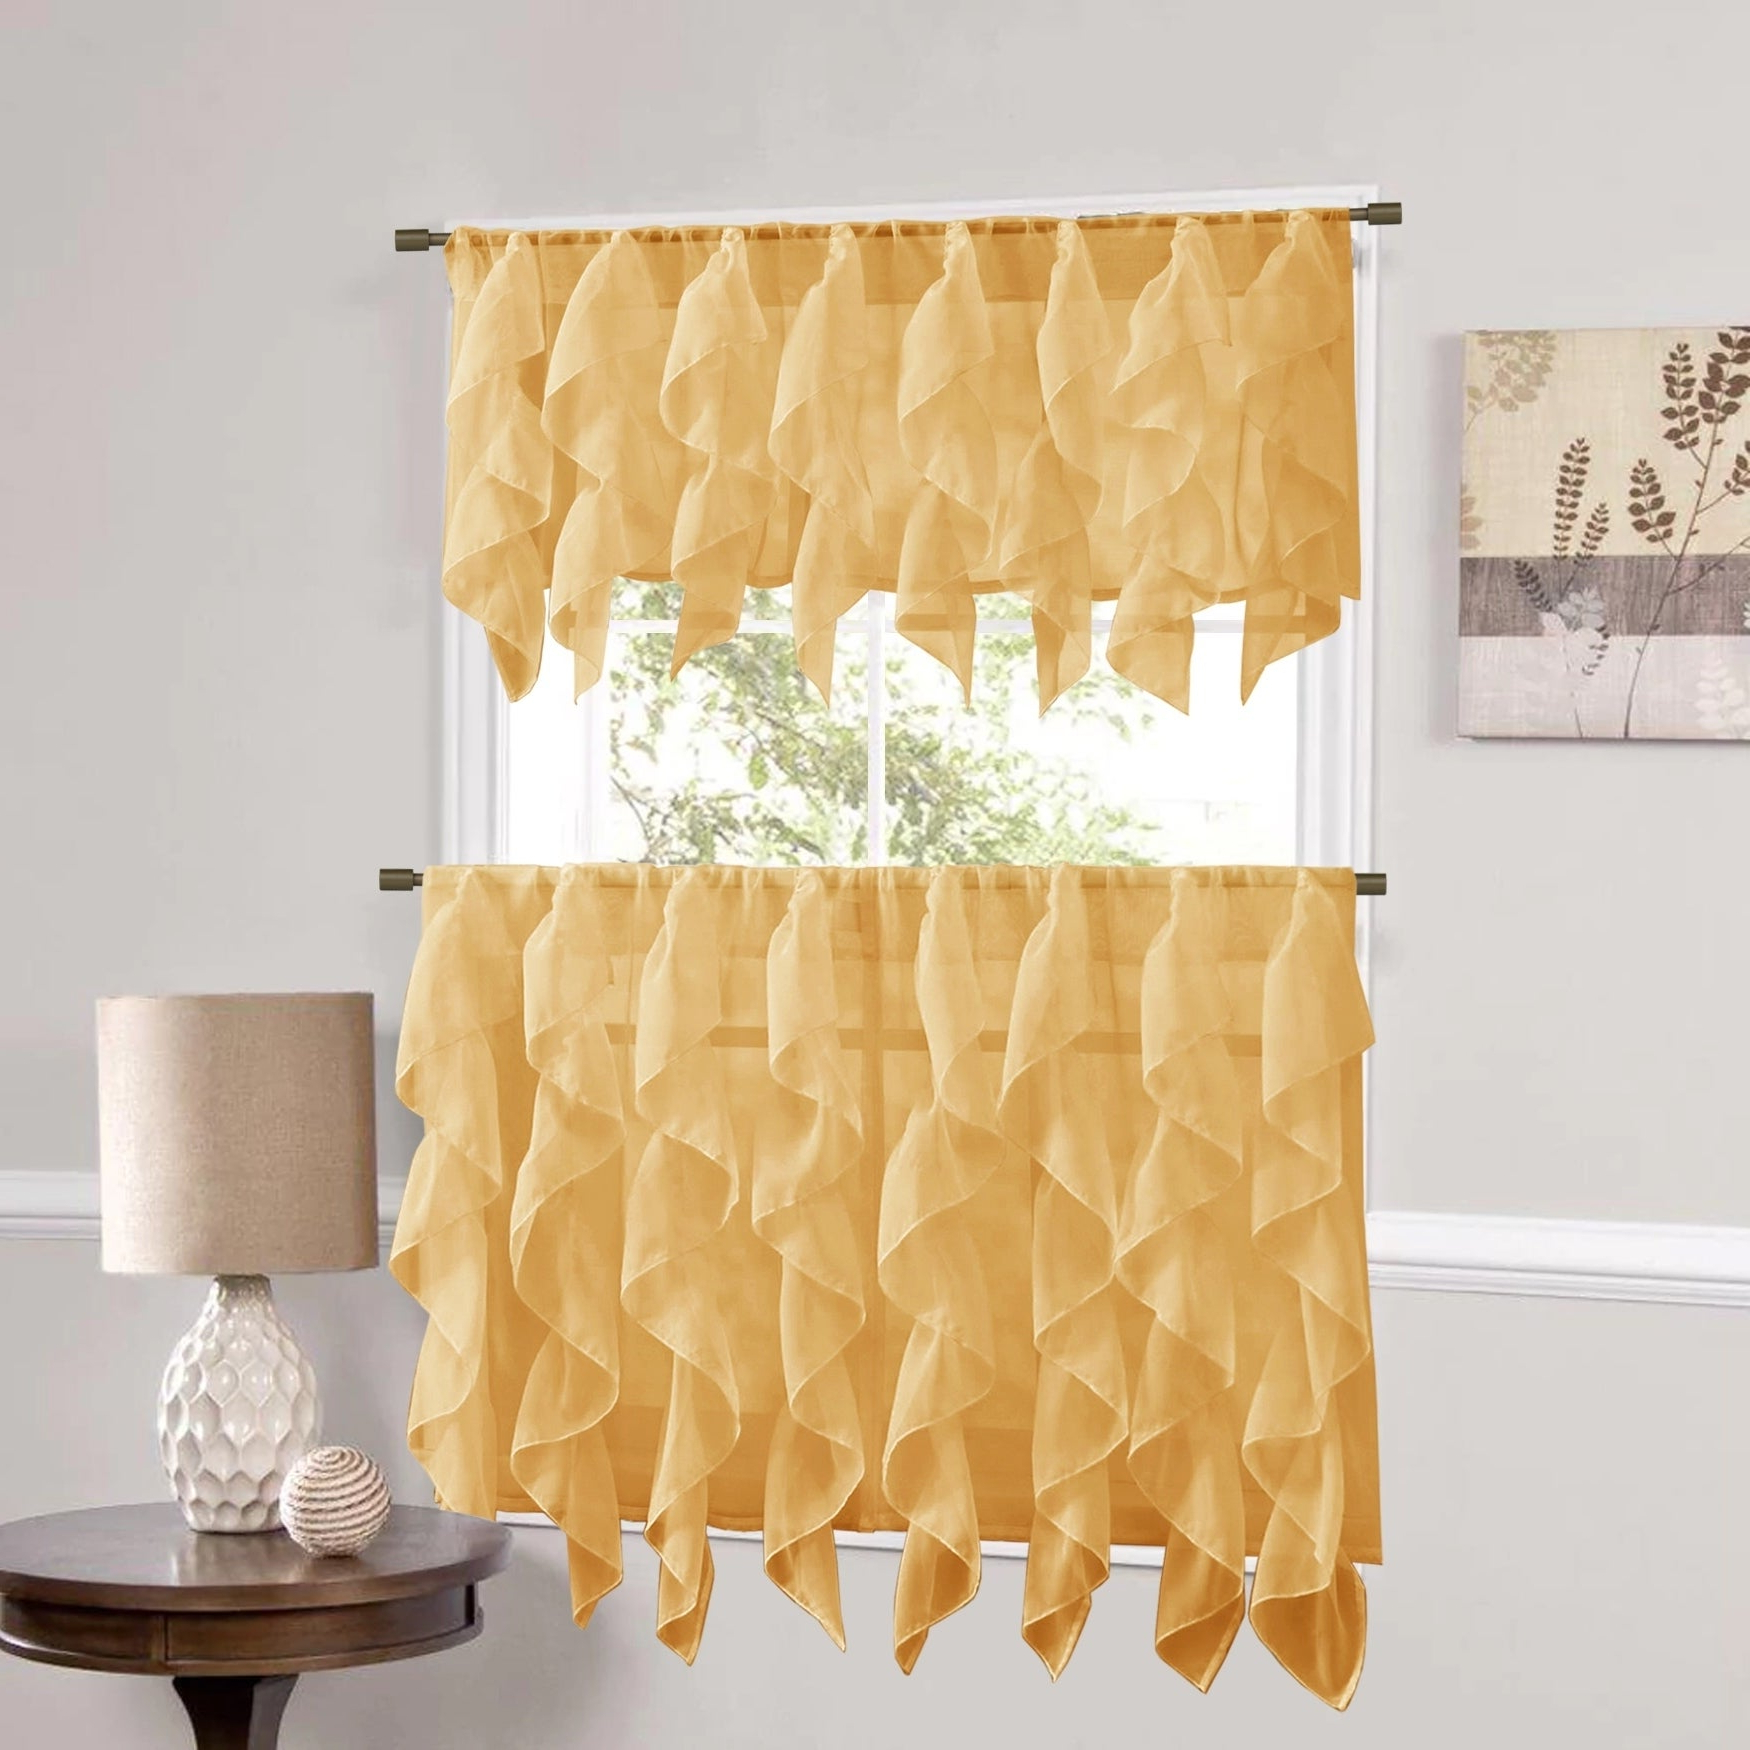 Silver Vertical Ruffled Waterfall Valance And Curtain Tiers With Regard To Current Sweet Home Collection Camel Vertical Ruffled Waterfall Valance And Curtain Tiers (View 4 of 20)